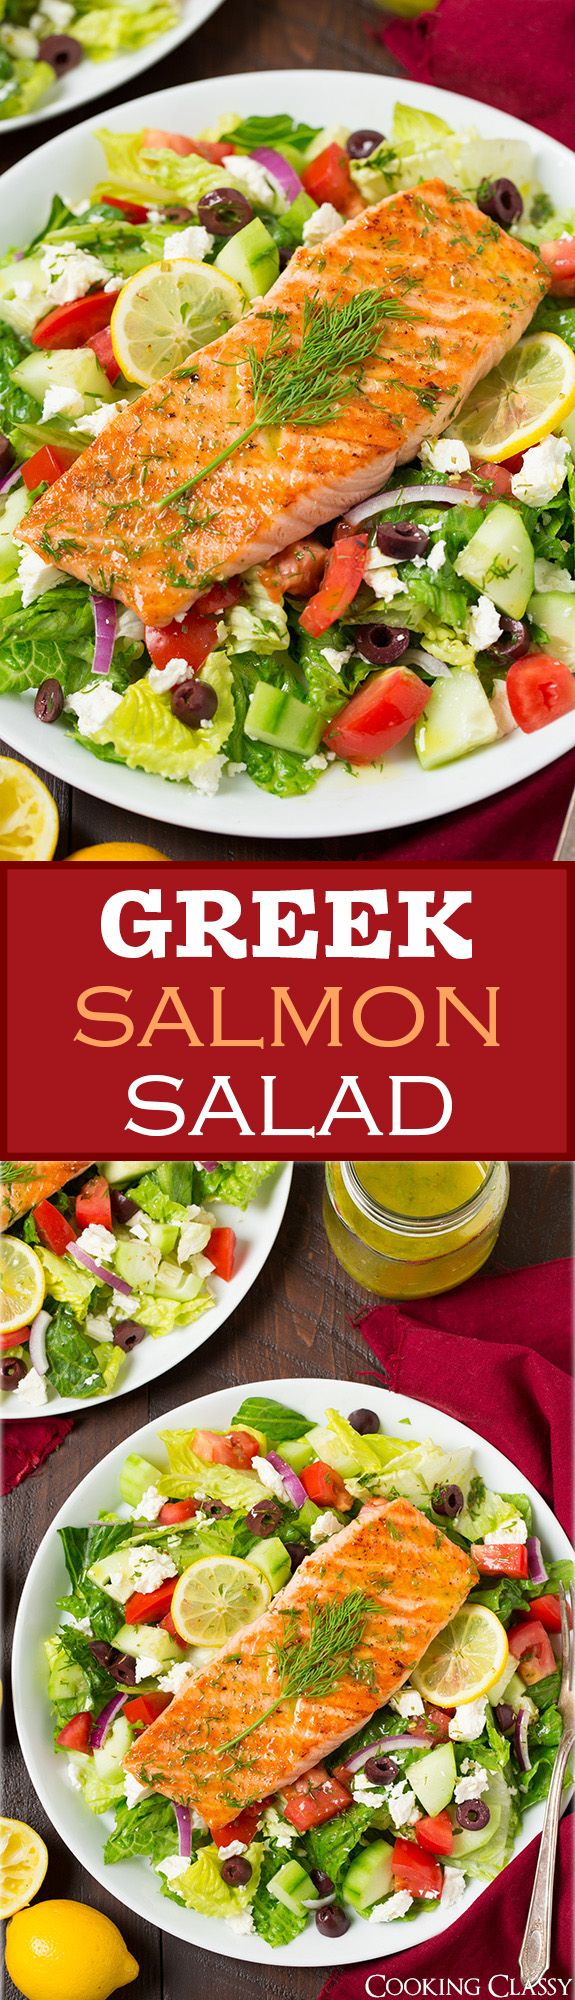 Greek Salmon Salad with Lemon Dill Vinaigrette - this salad is delish! Could sub chicken for the salmon for a cheaper alternative.